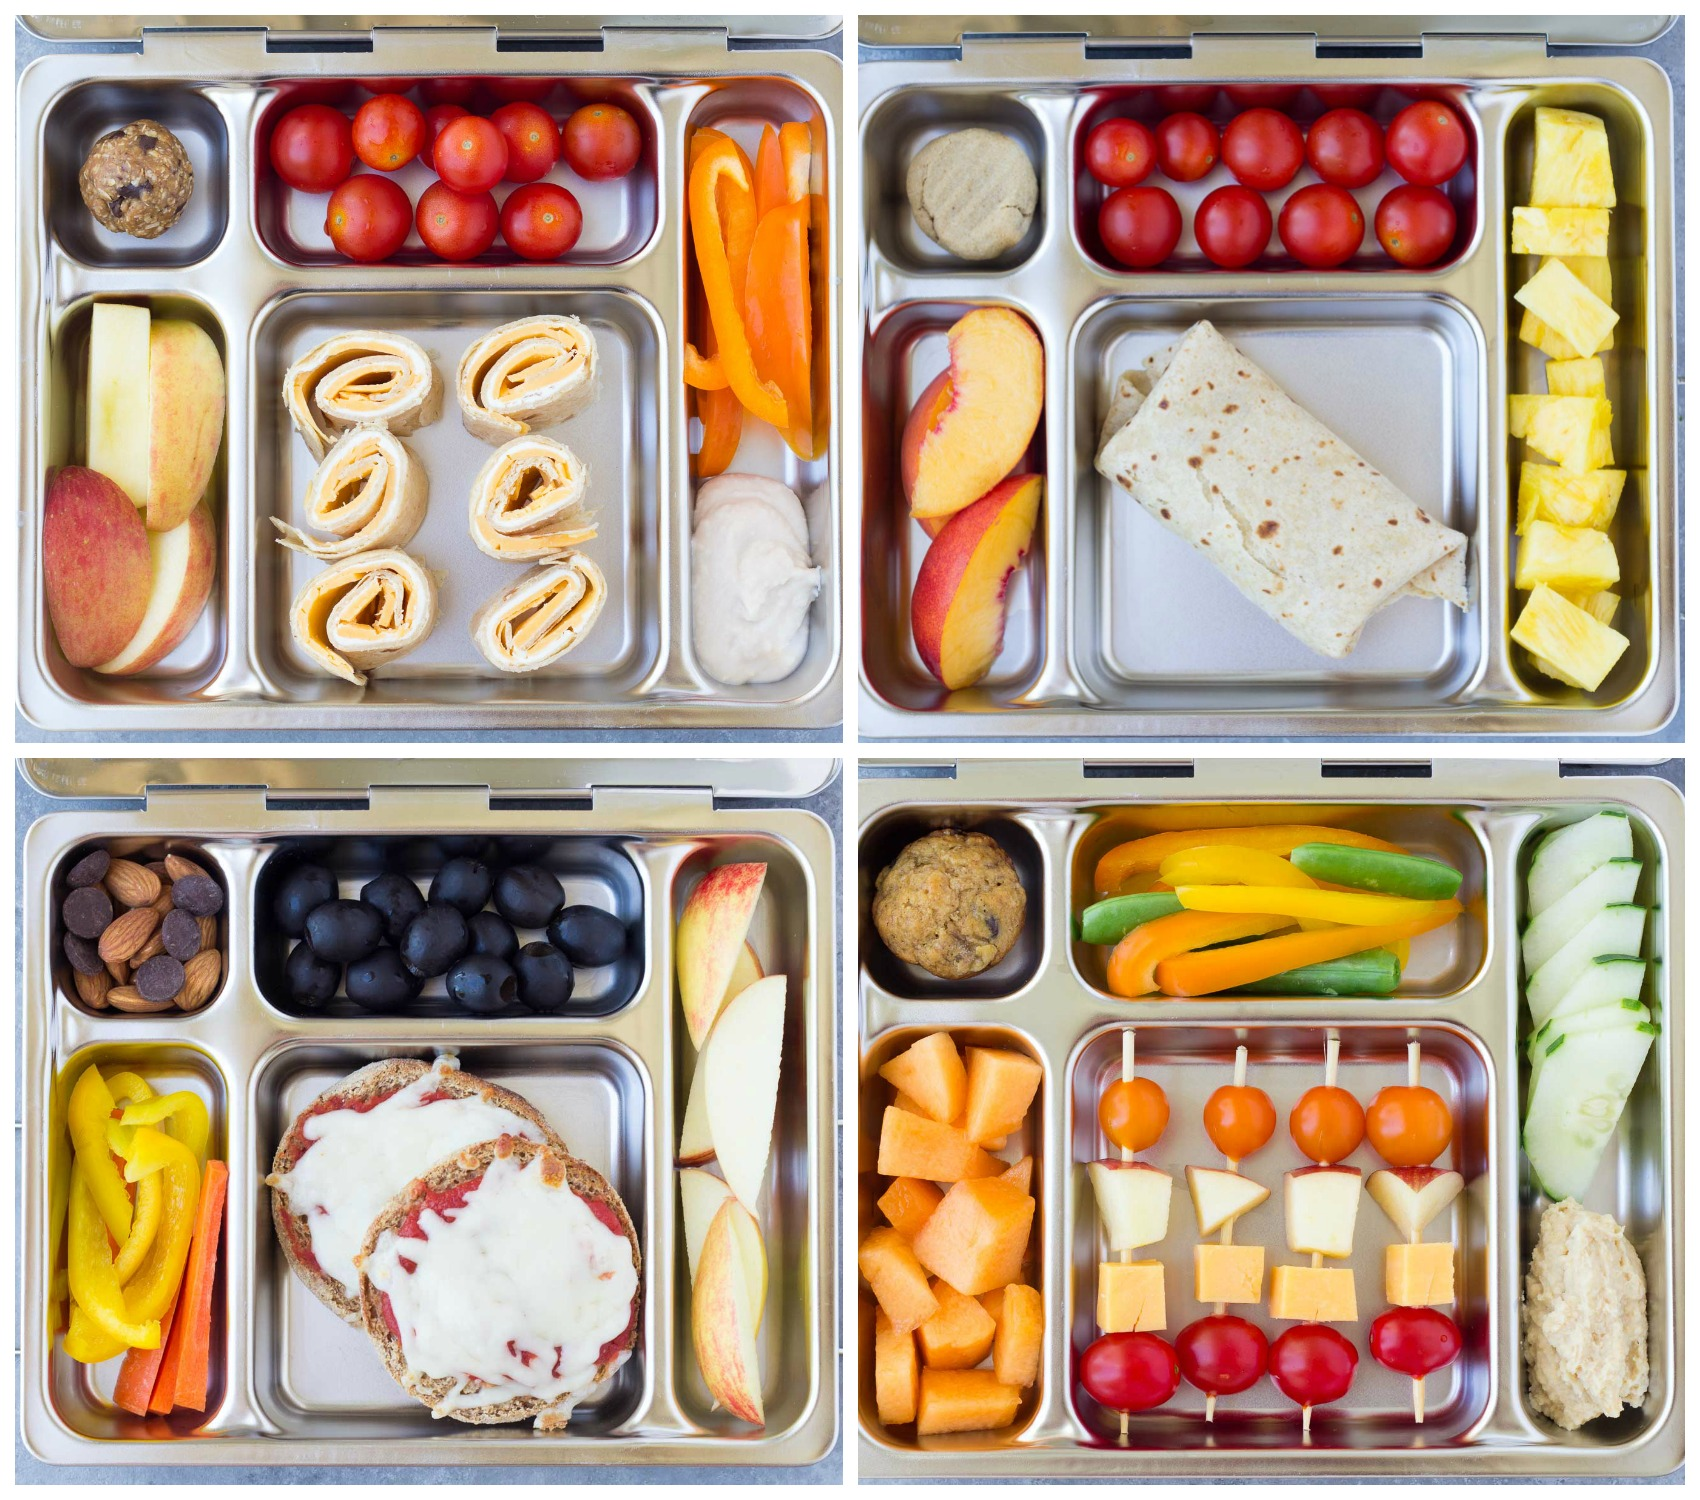 Four healthy school lunch ideas with fruit and vegetables